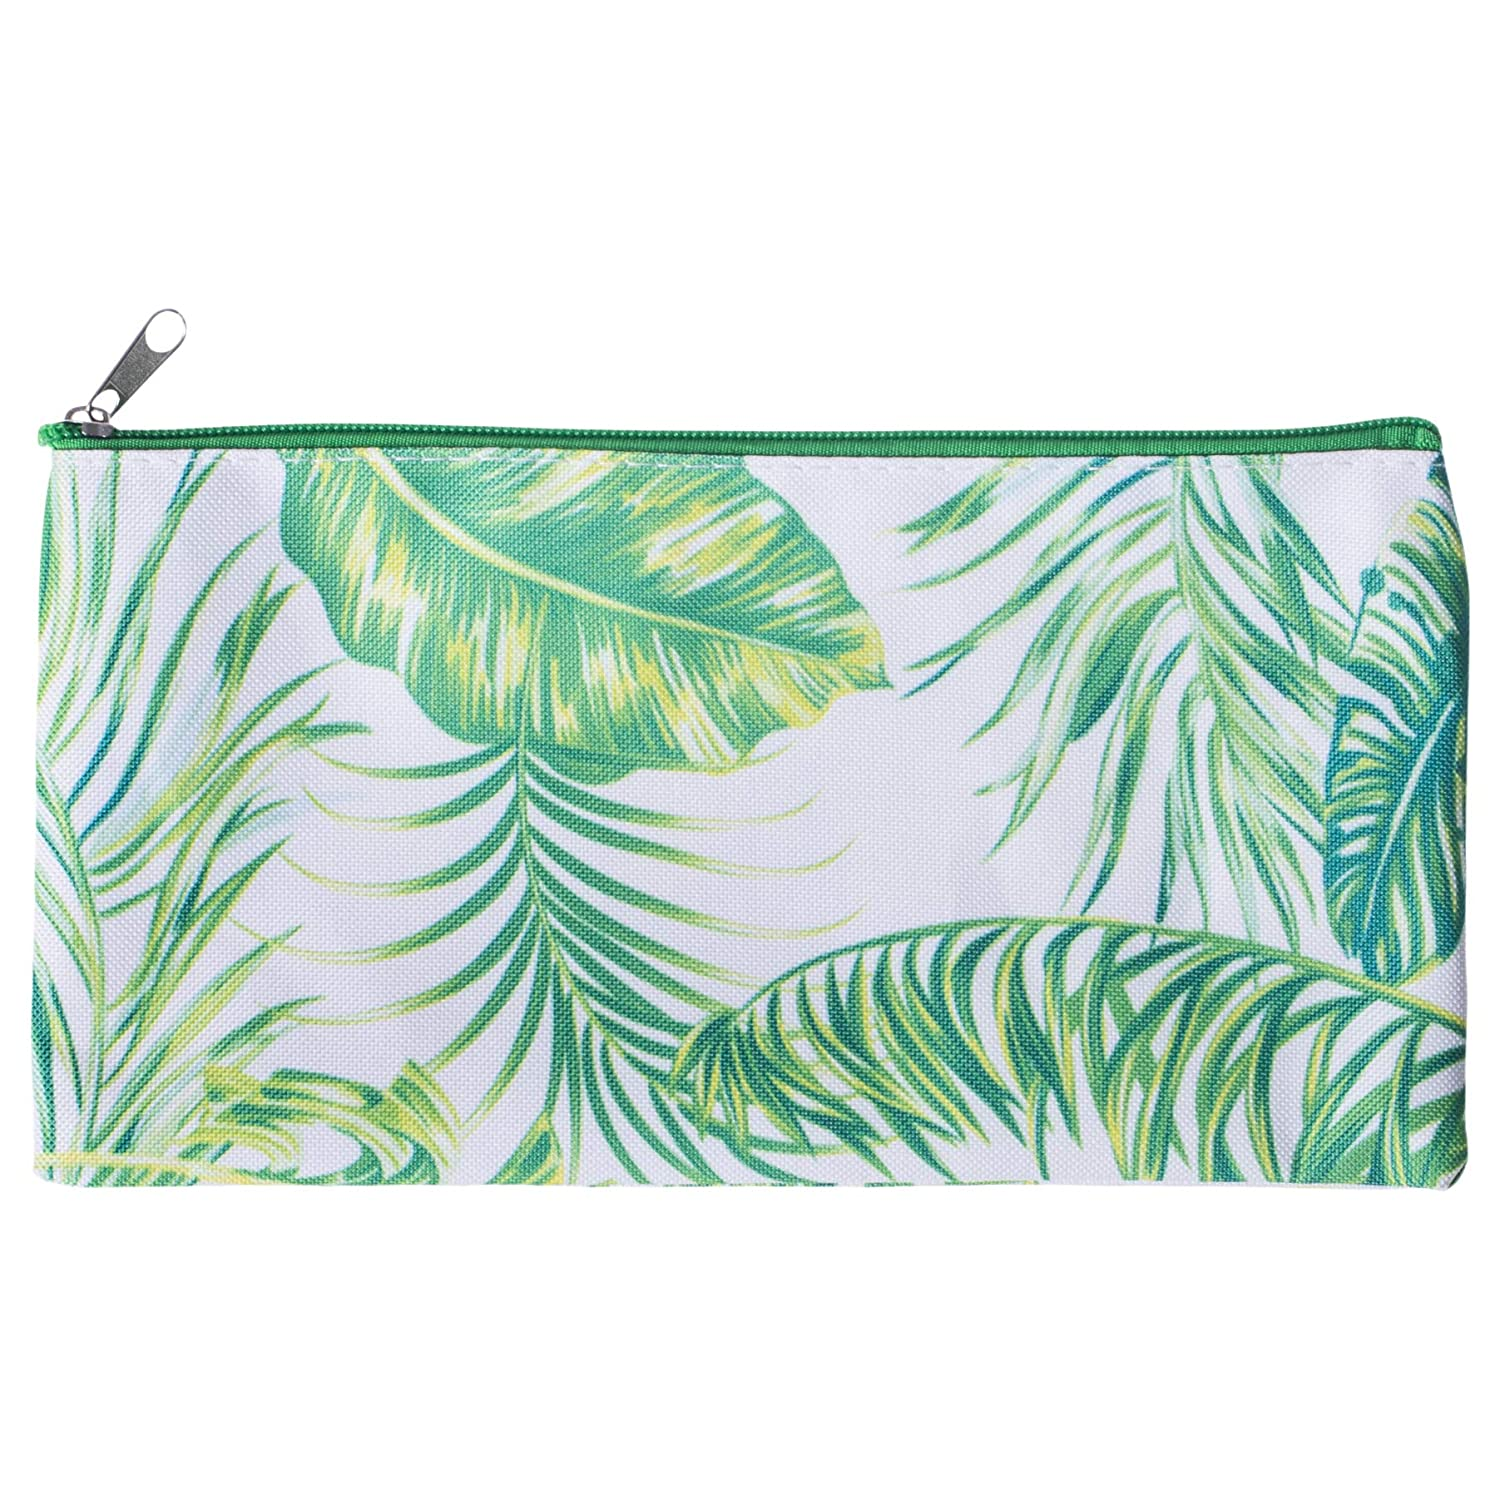 Pencil Case Zippered Palm Tree Leaves 10 x 6 Microfiber Fabric Cosmetic Bag